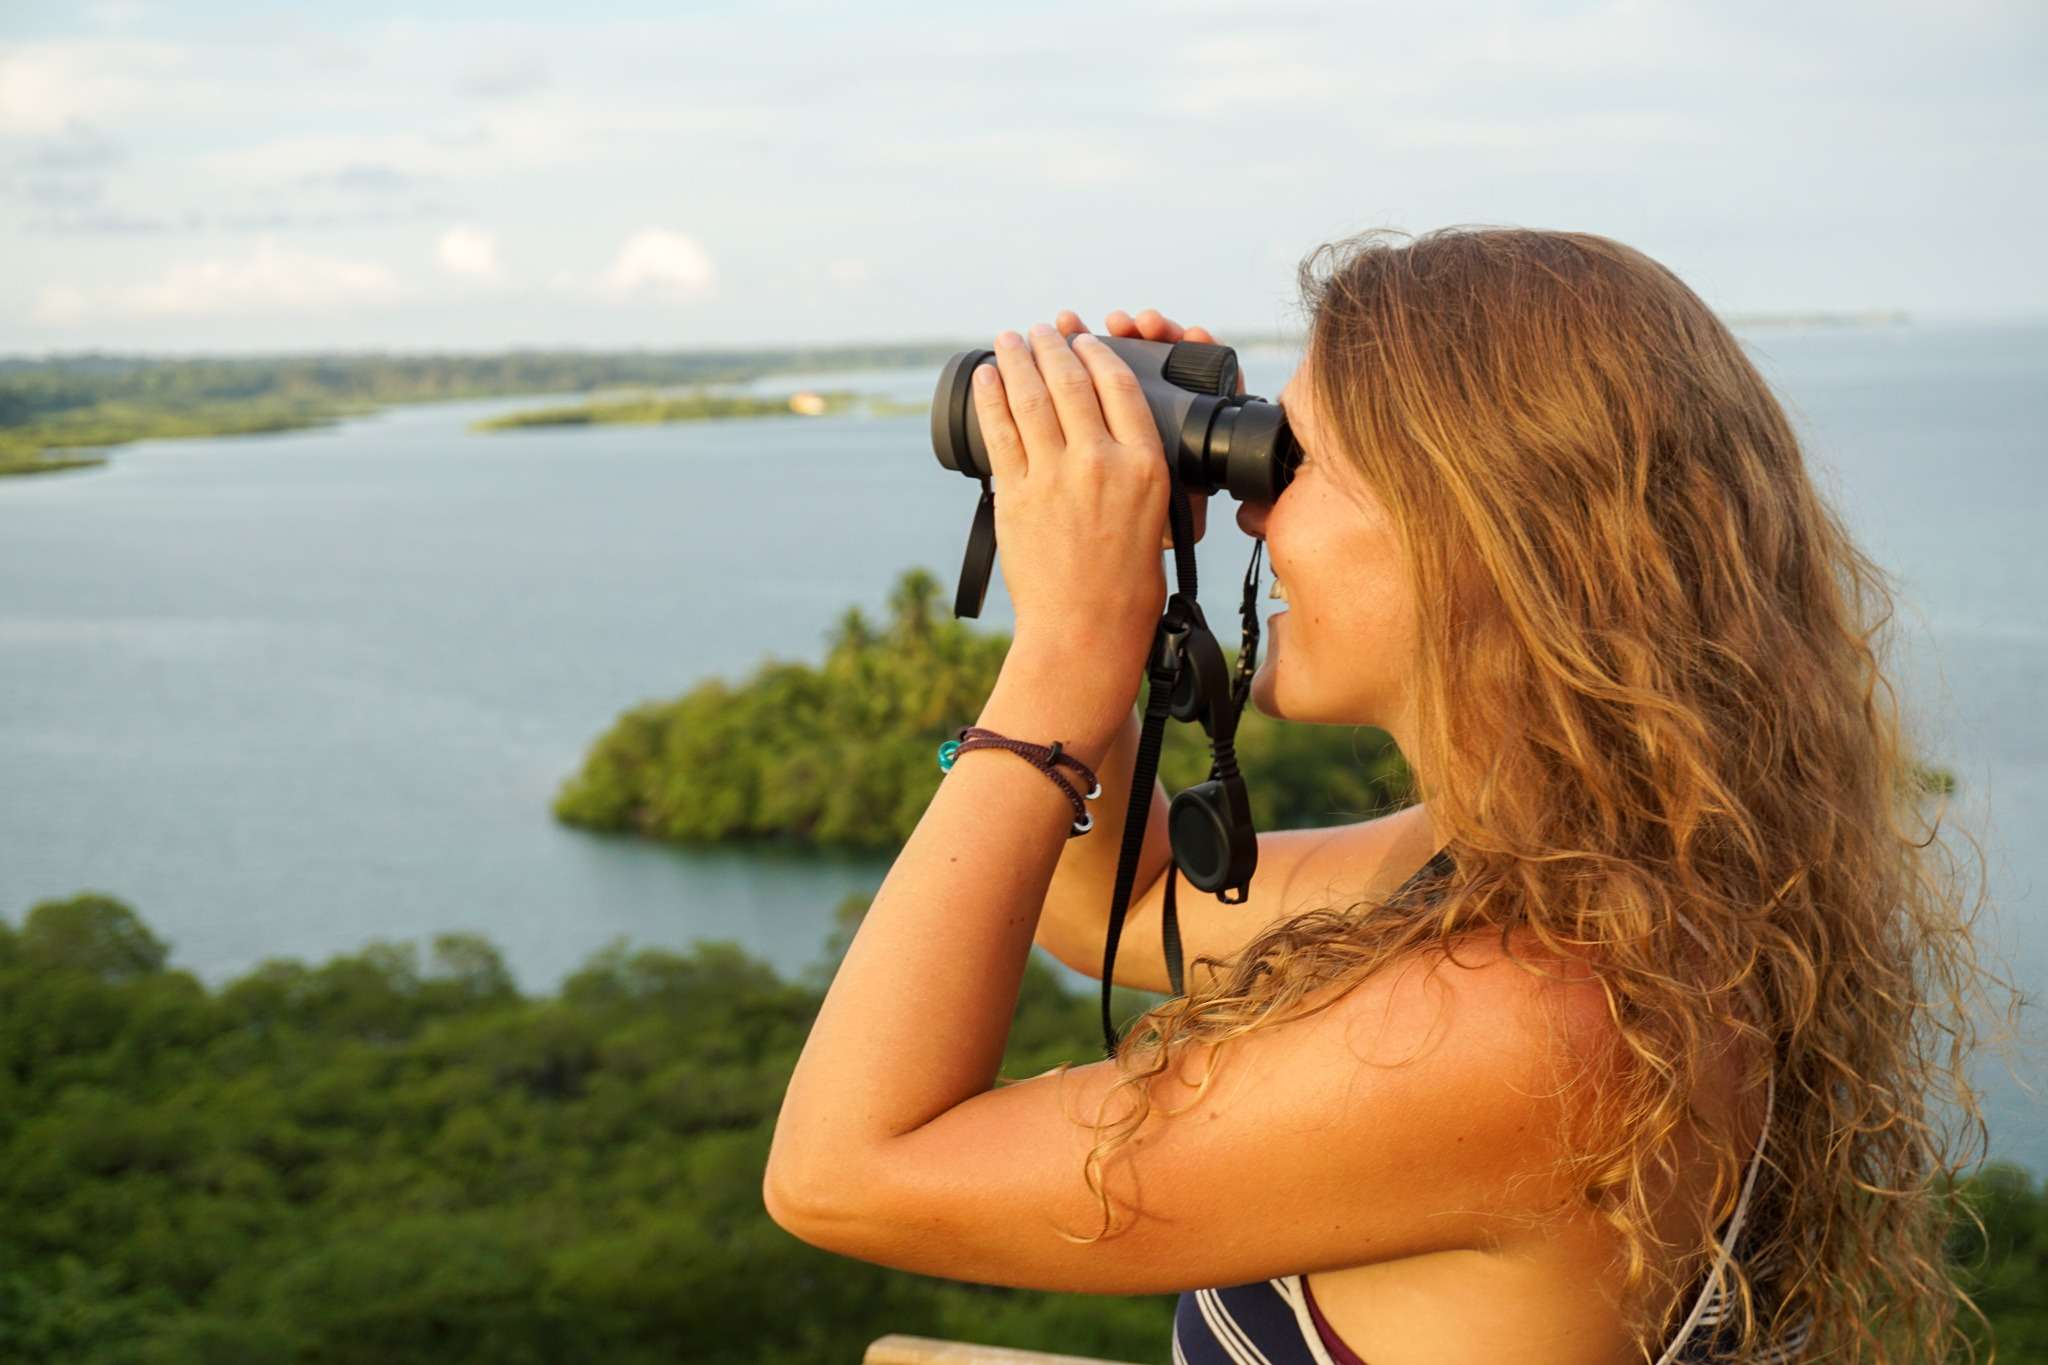 lady with long curly hair looks through binoculars with the sea and trees in the background at Tranquilo Bay Panama